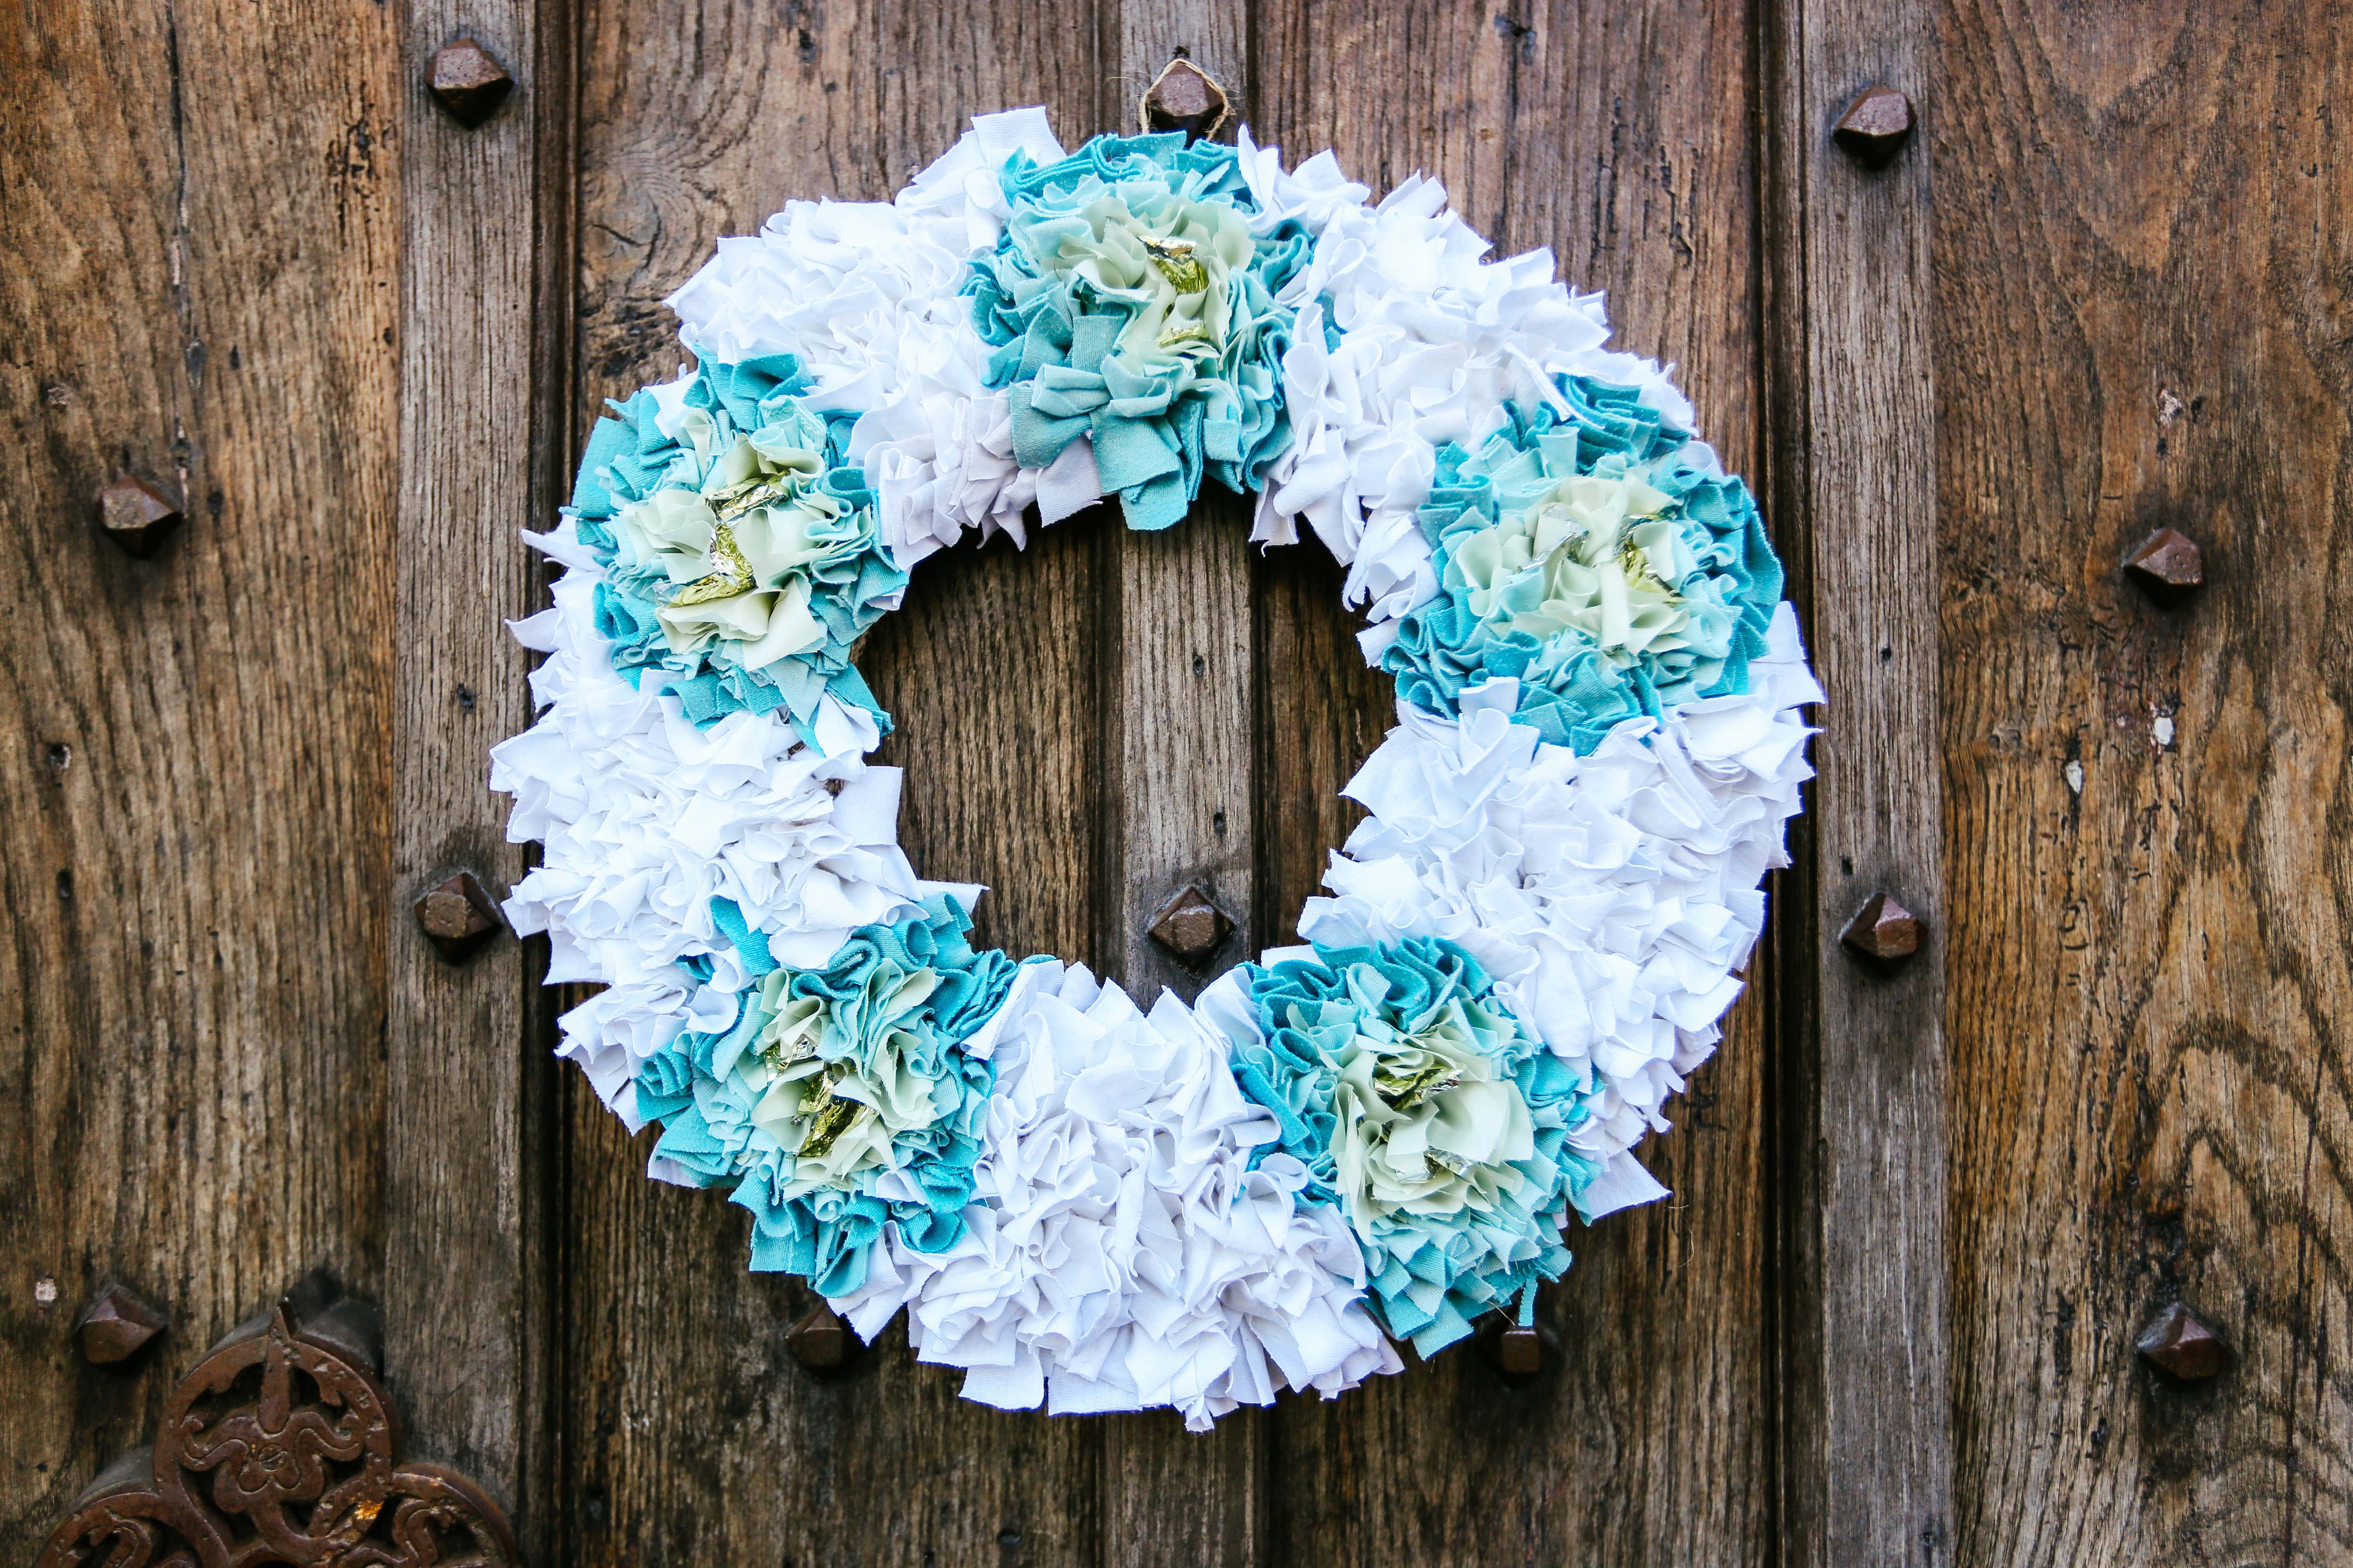 White Rag Rug Wreath